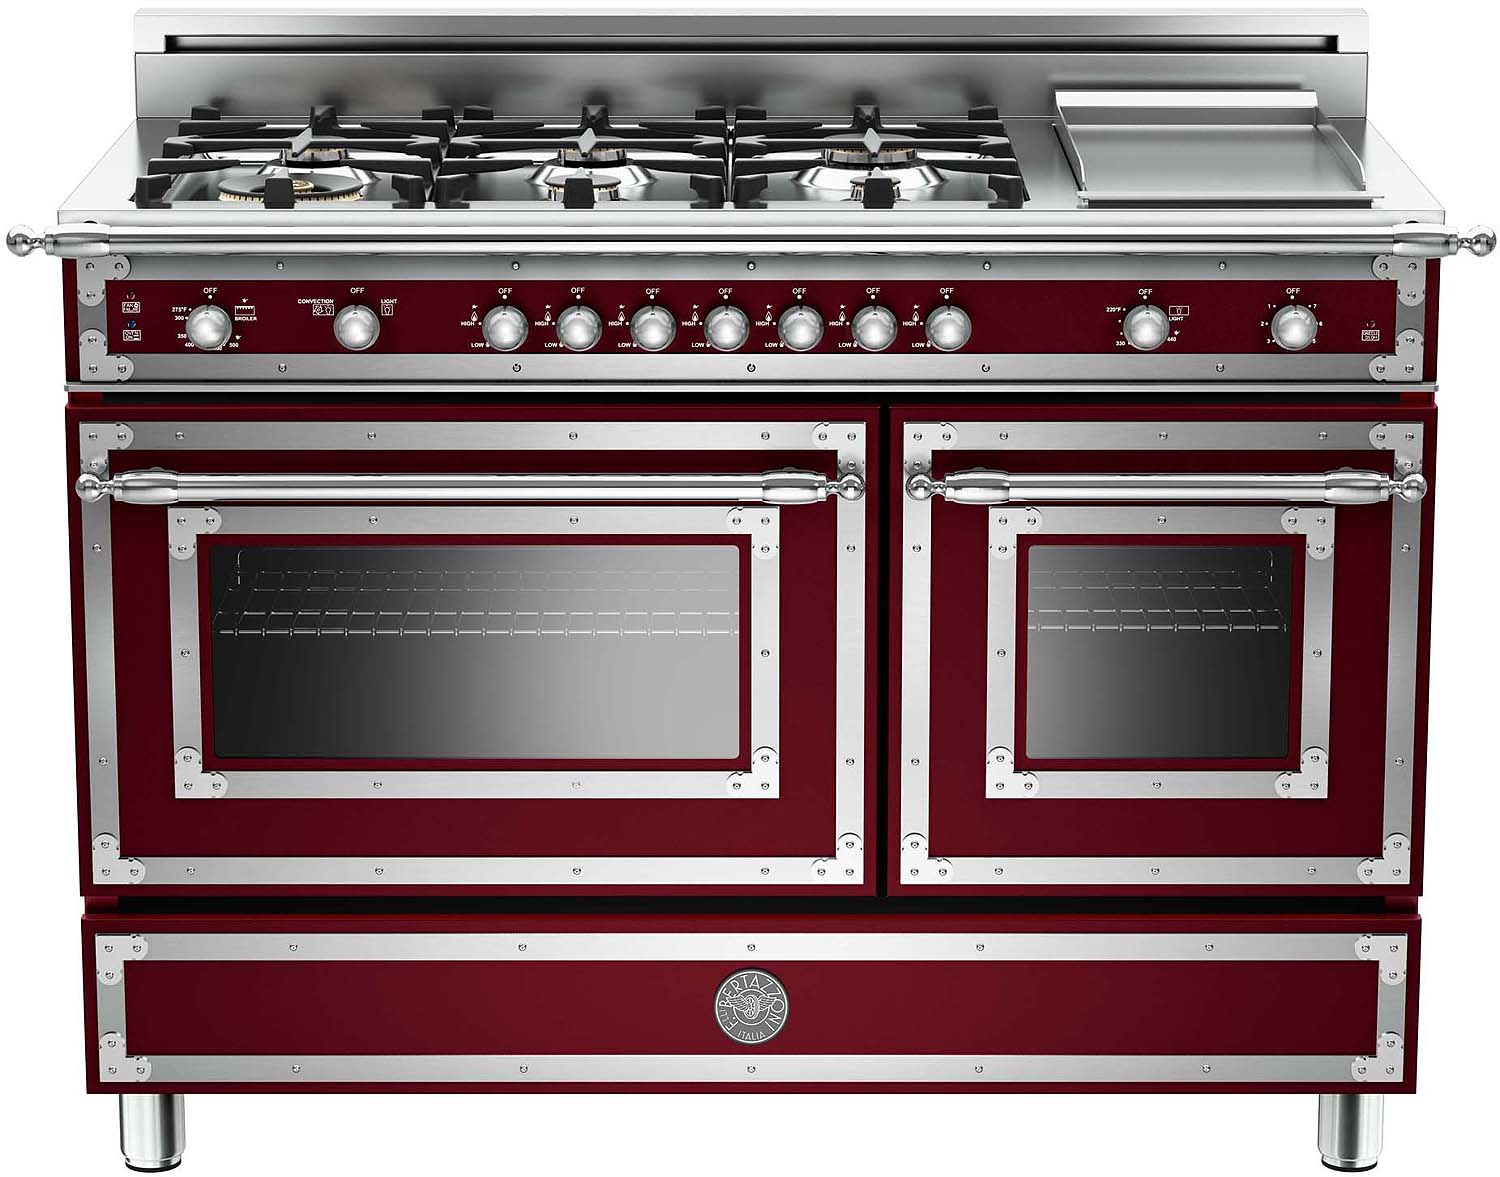 Bertazzoni Gas Range Ranges Compare Prices At Nextag - Abt gas ranges